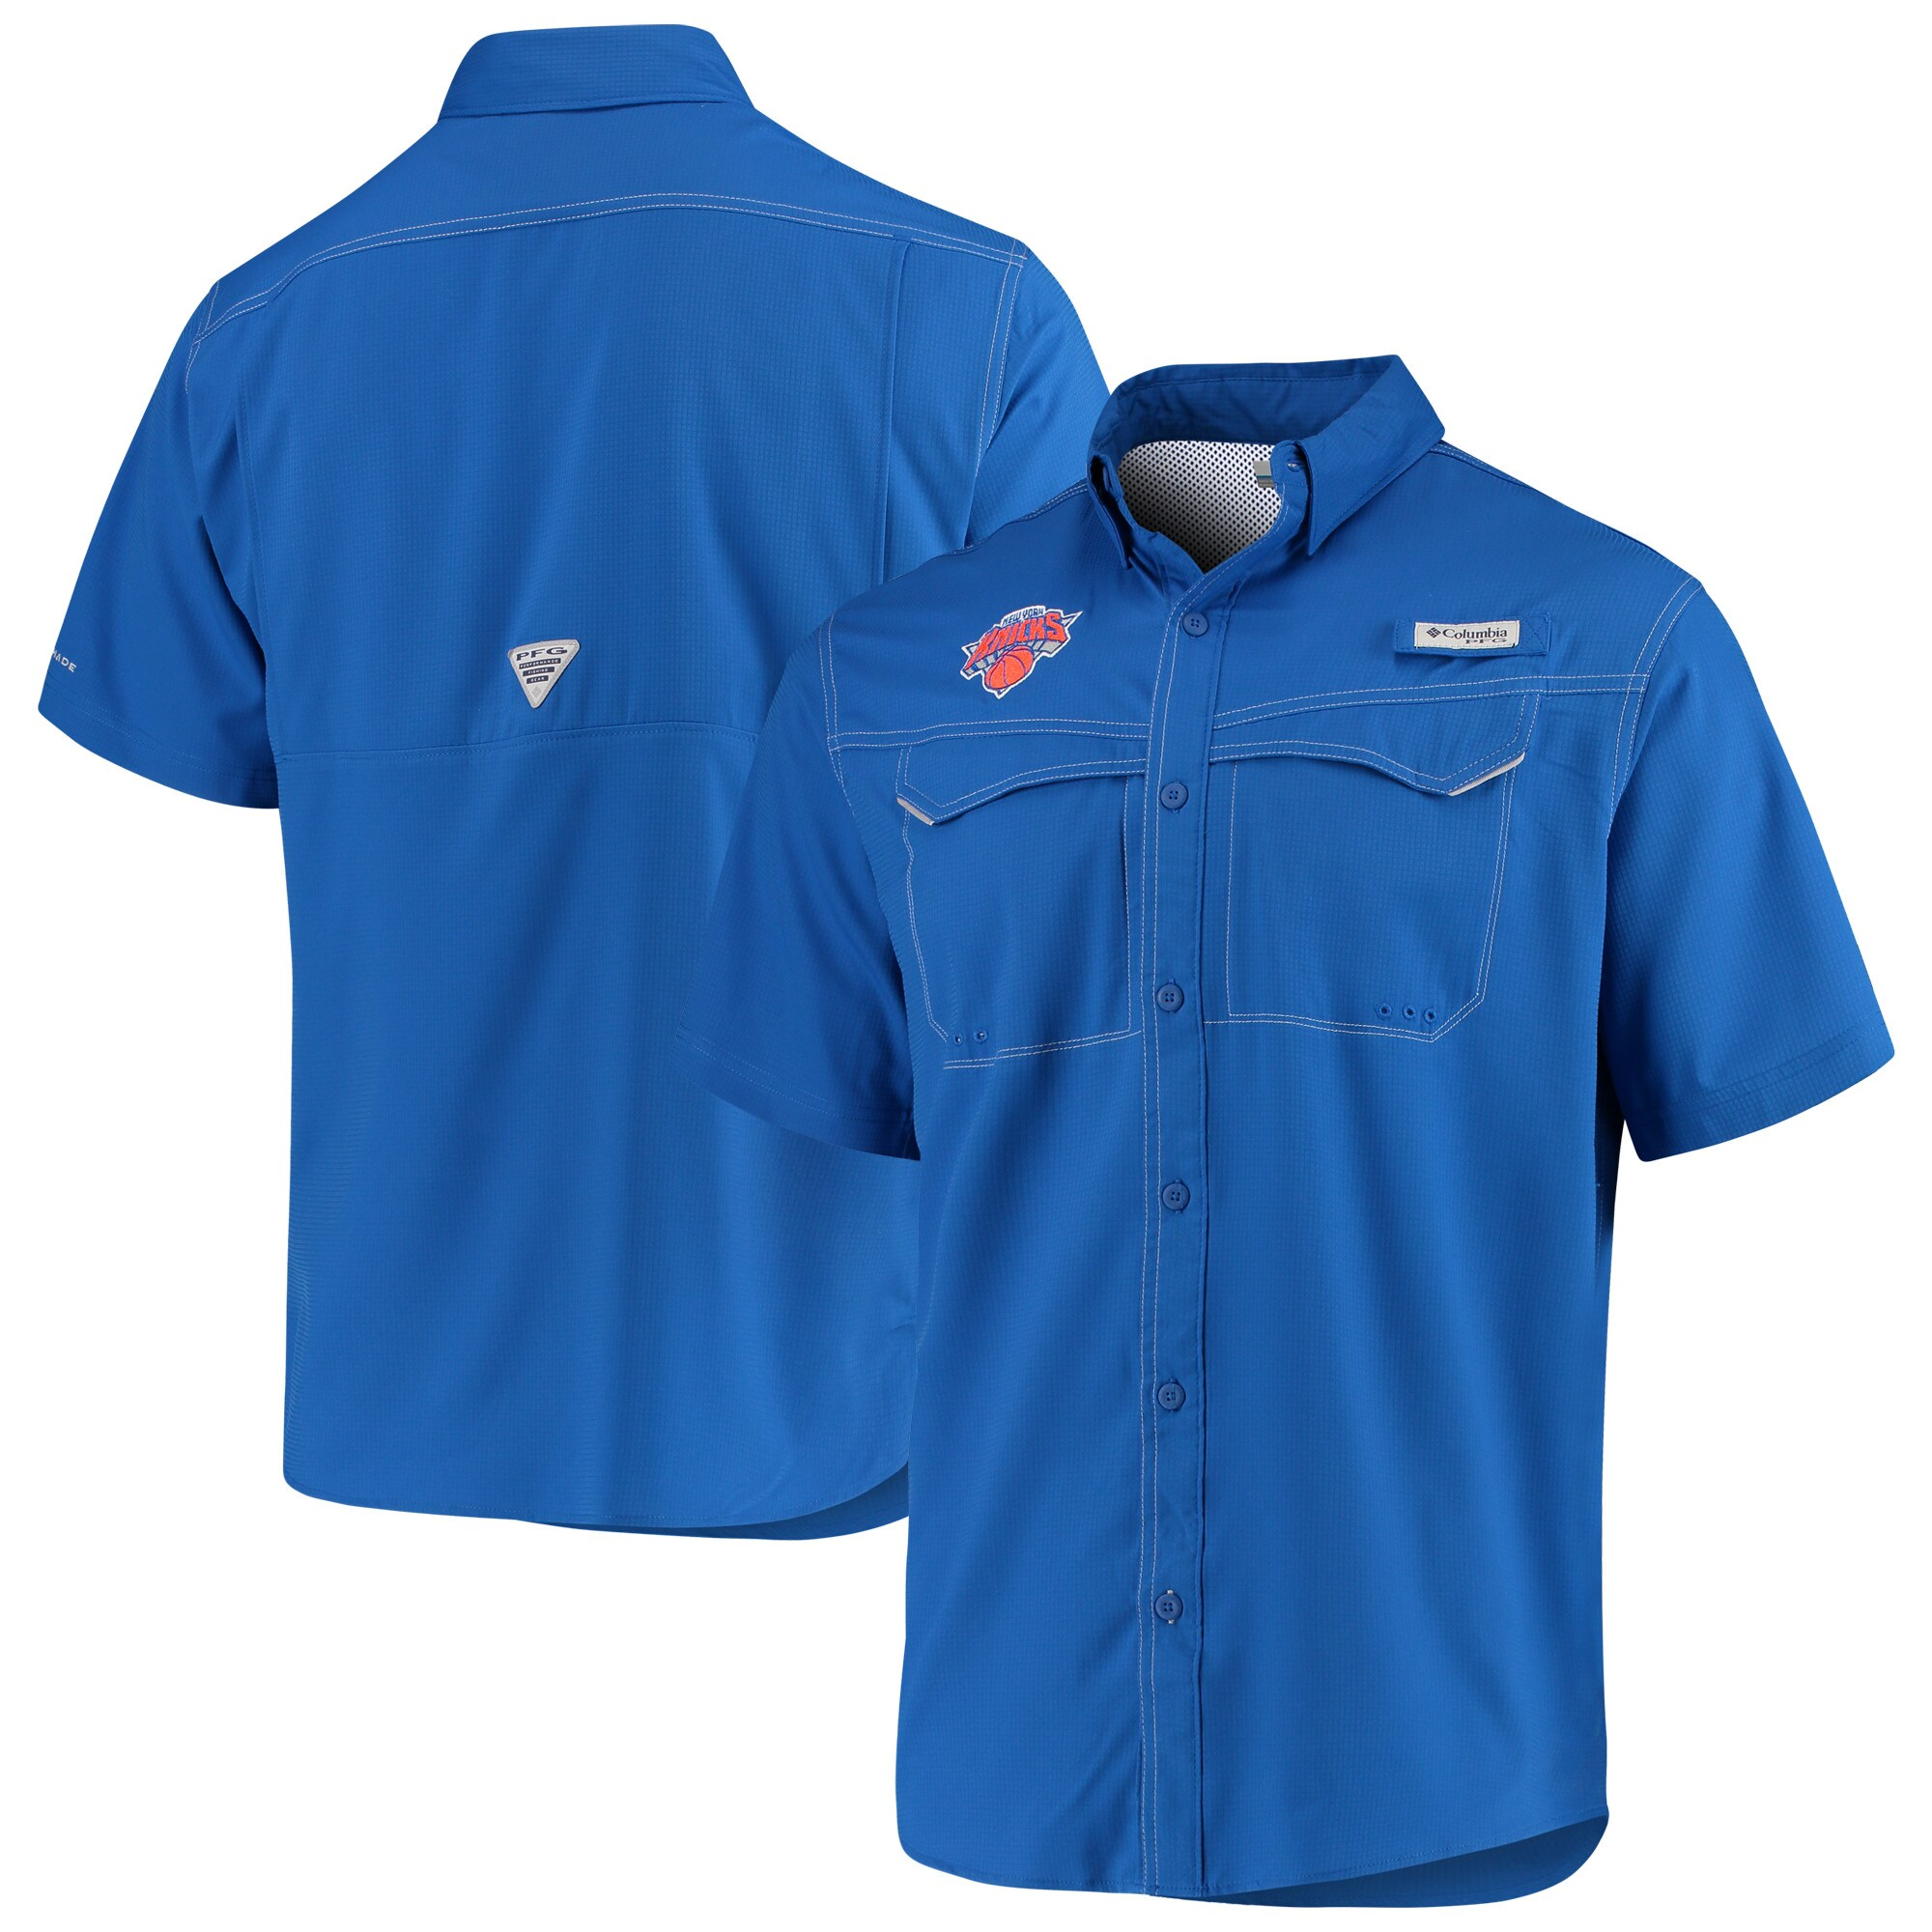 New York Knicks Columbia Low Drag Offshore Omni-Shade Button-Up Shirt - Blue